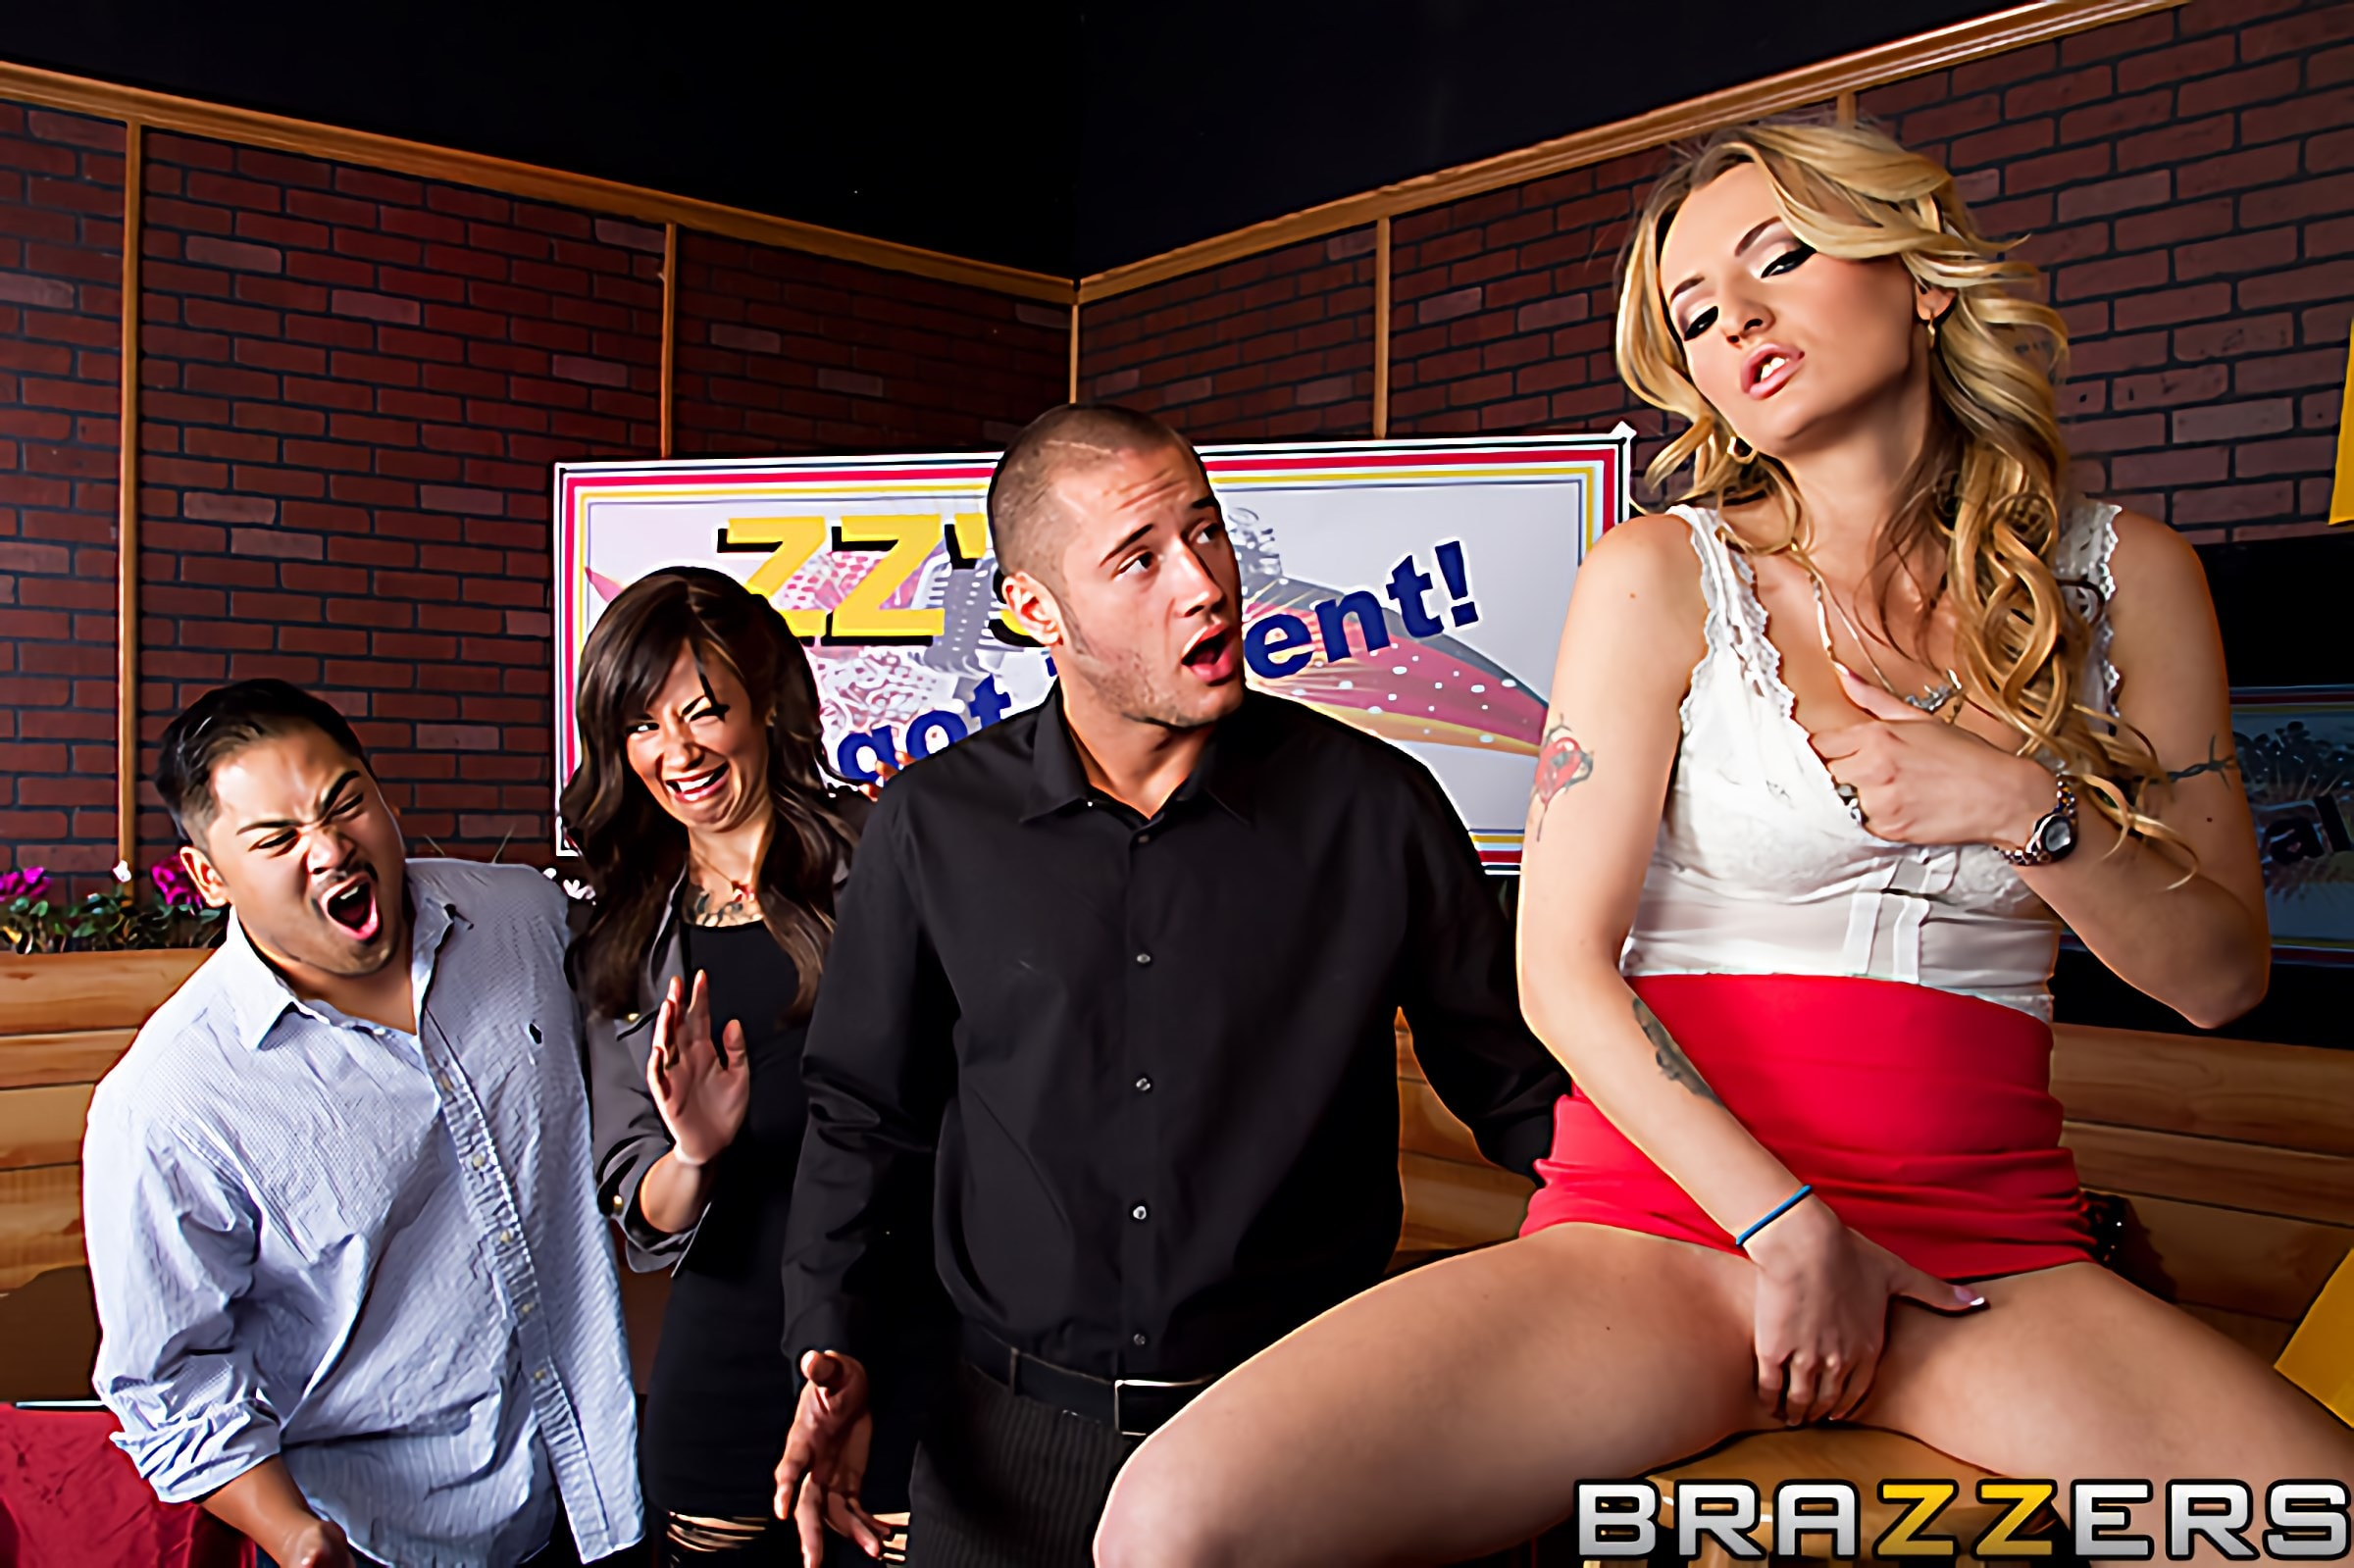 Brazzers 'ZZs Got Talent' starring Natasha Starr (Photo 1)